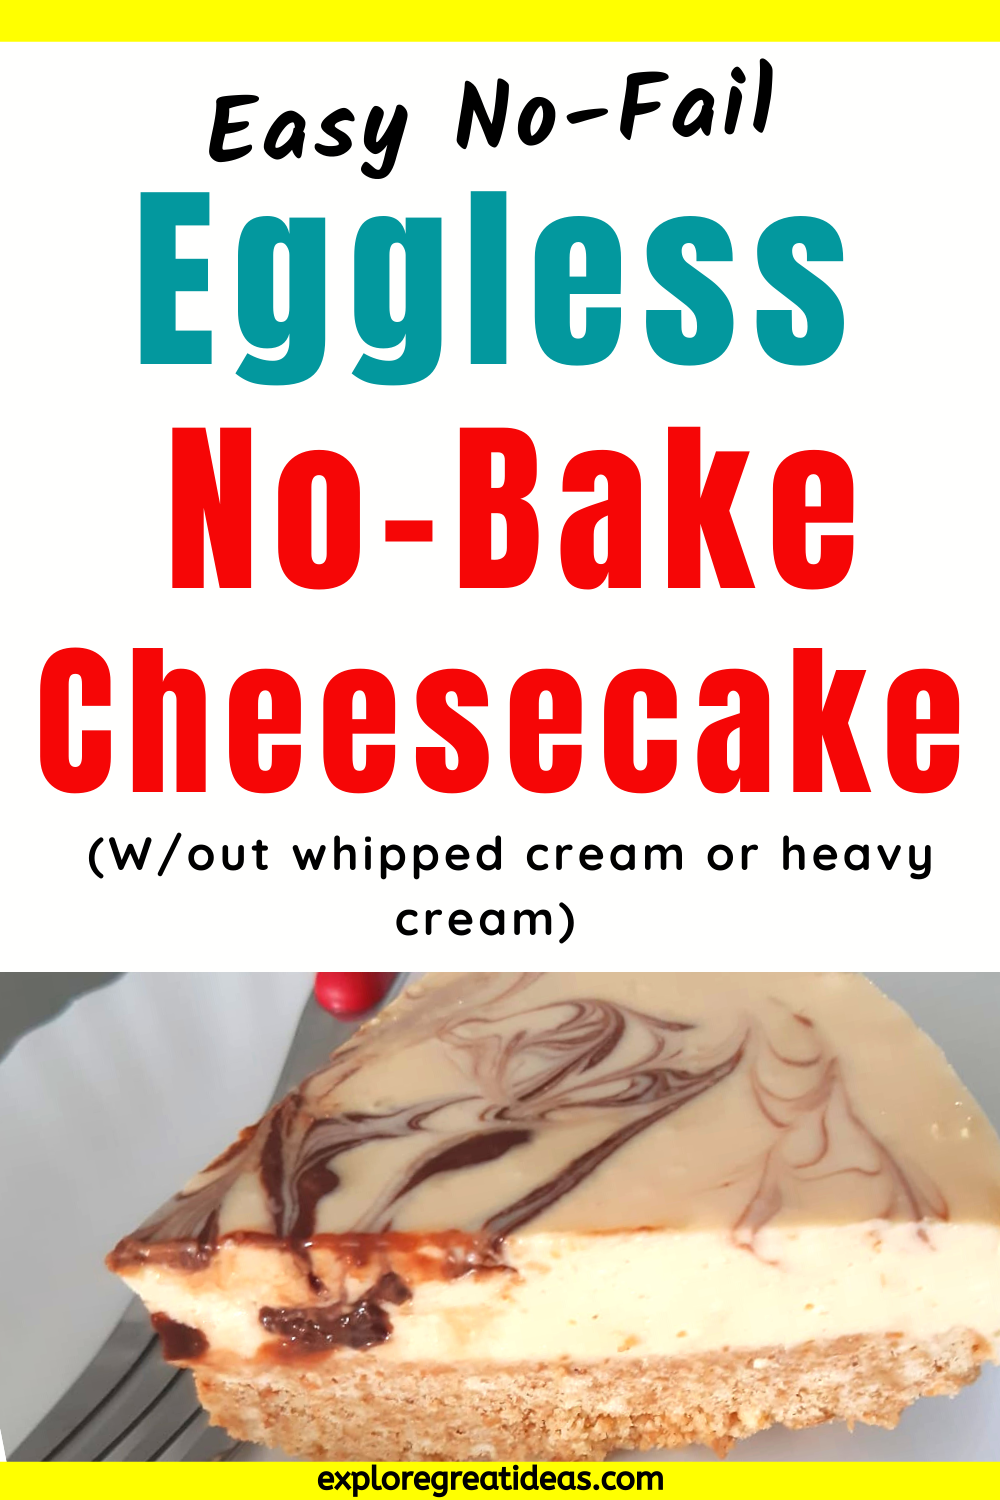 No Bake Cheesecake Without Whipped Cream Recipe In 2020 Easy Cheesecake Recipes Baked Cheesecake Recipe Dessert Recipes Easy